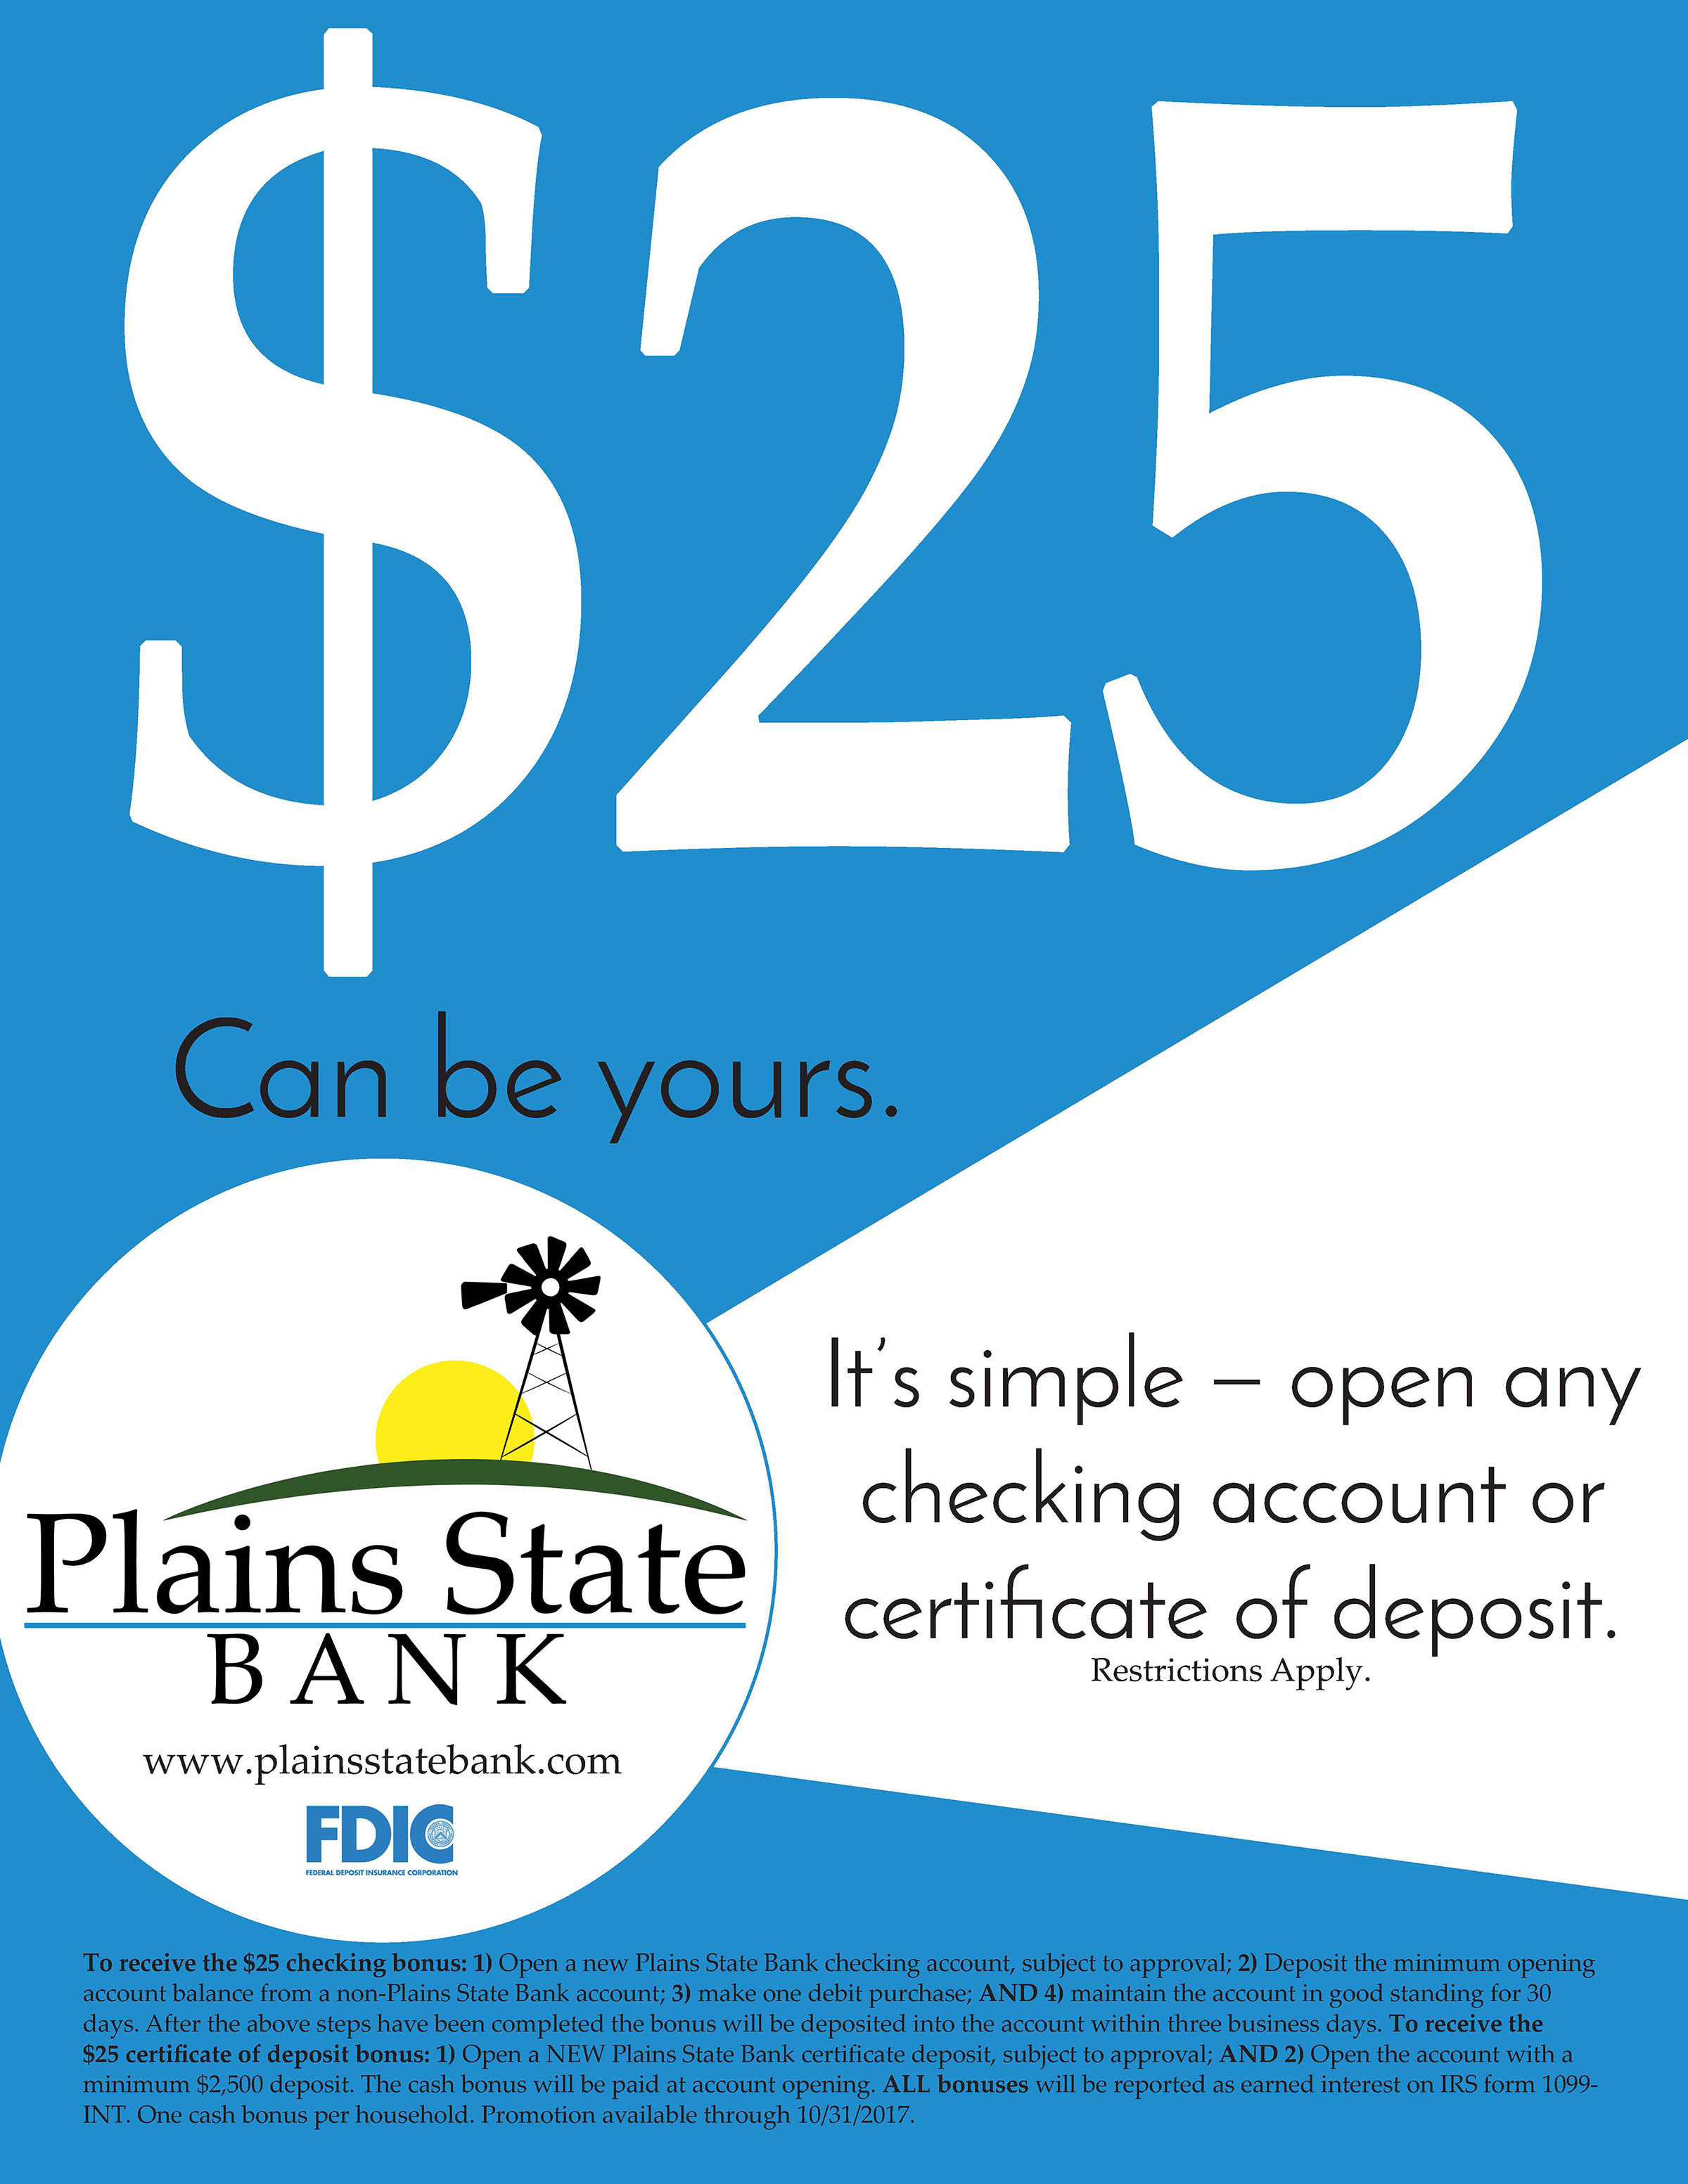 Received $25 for new checking account or CD. Restrictions Apply.